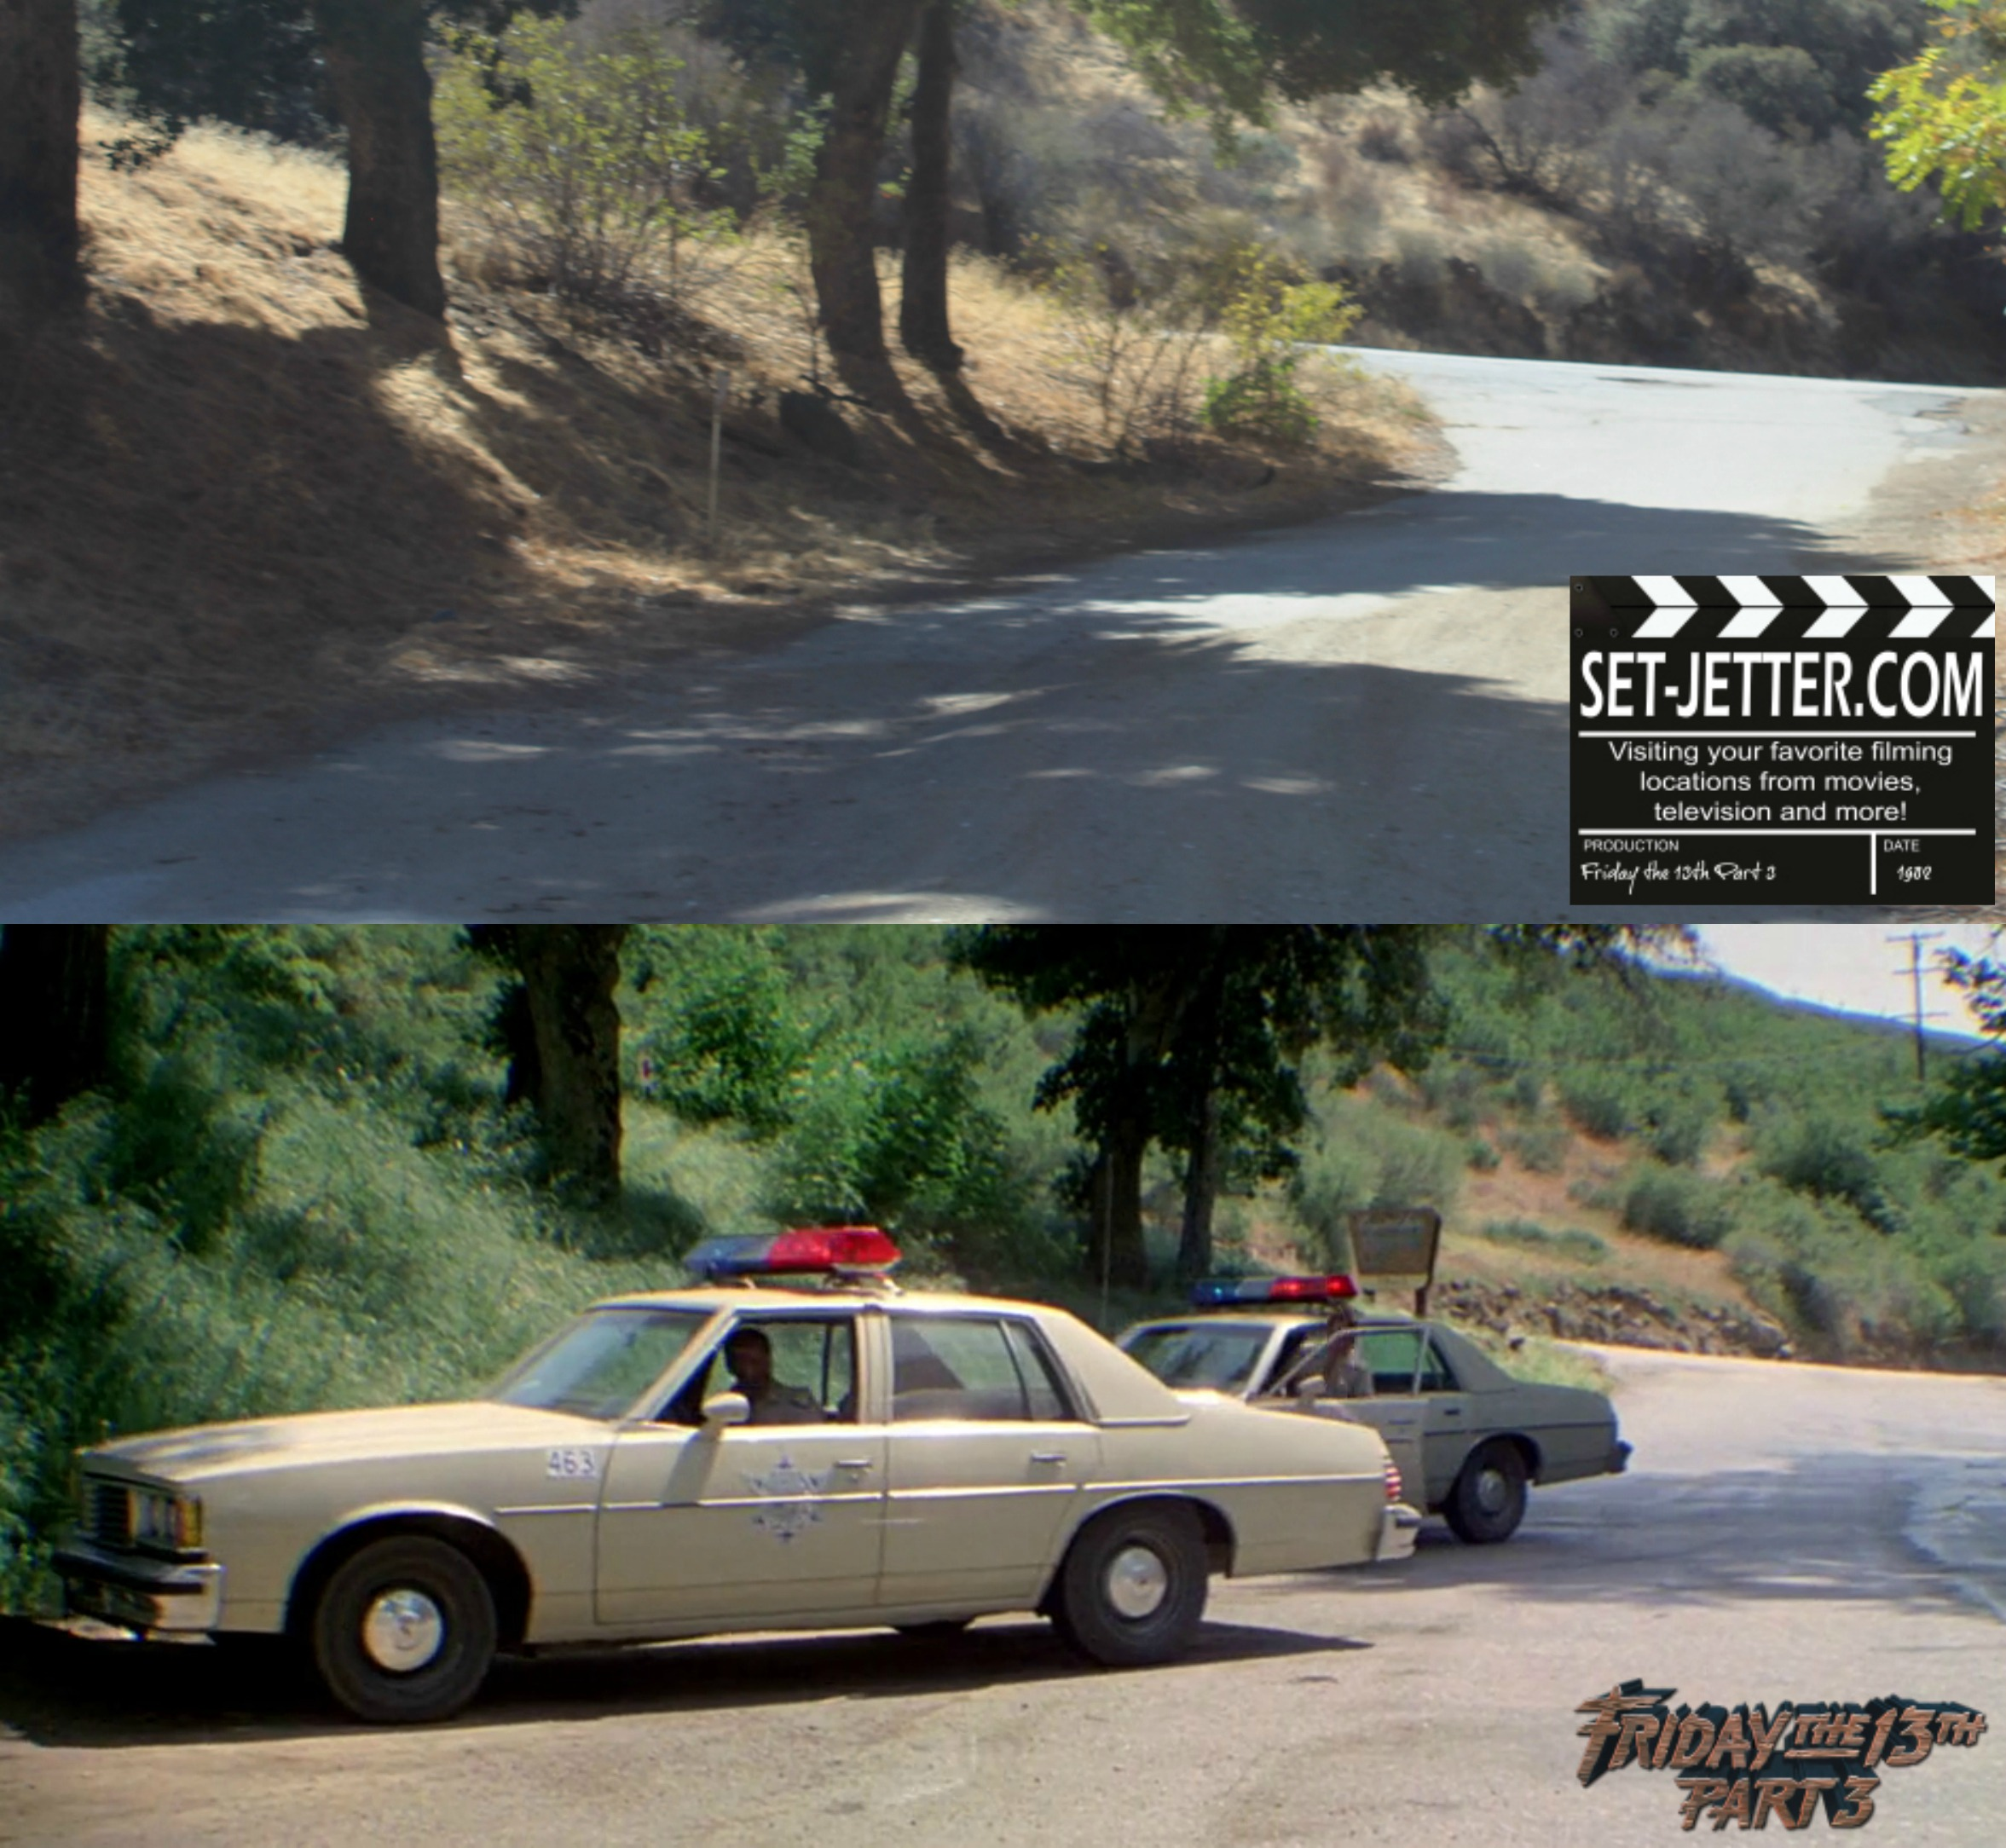 Friday the 13th Part 3 comparison 216.jpg